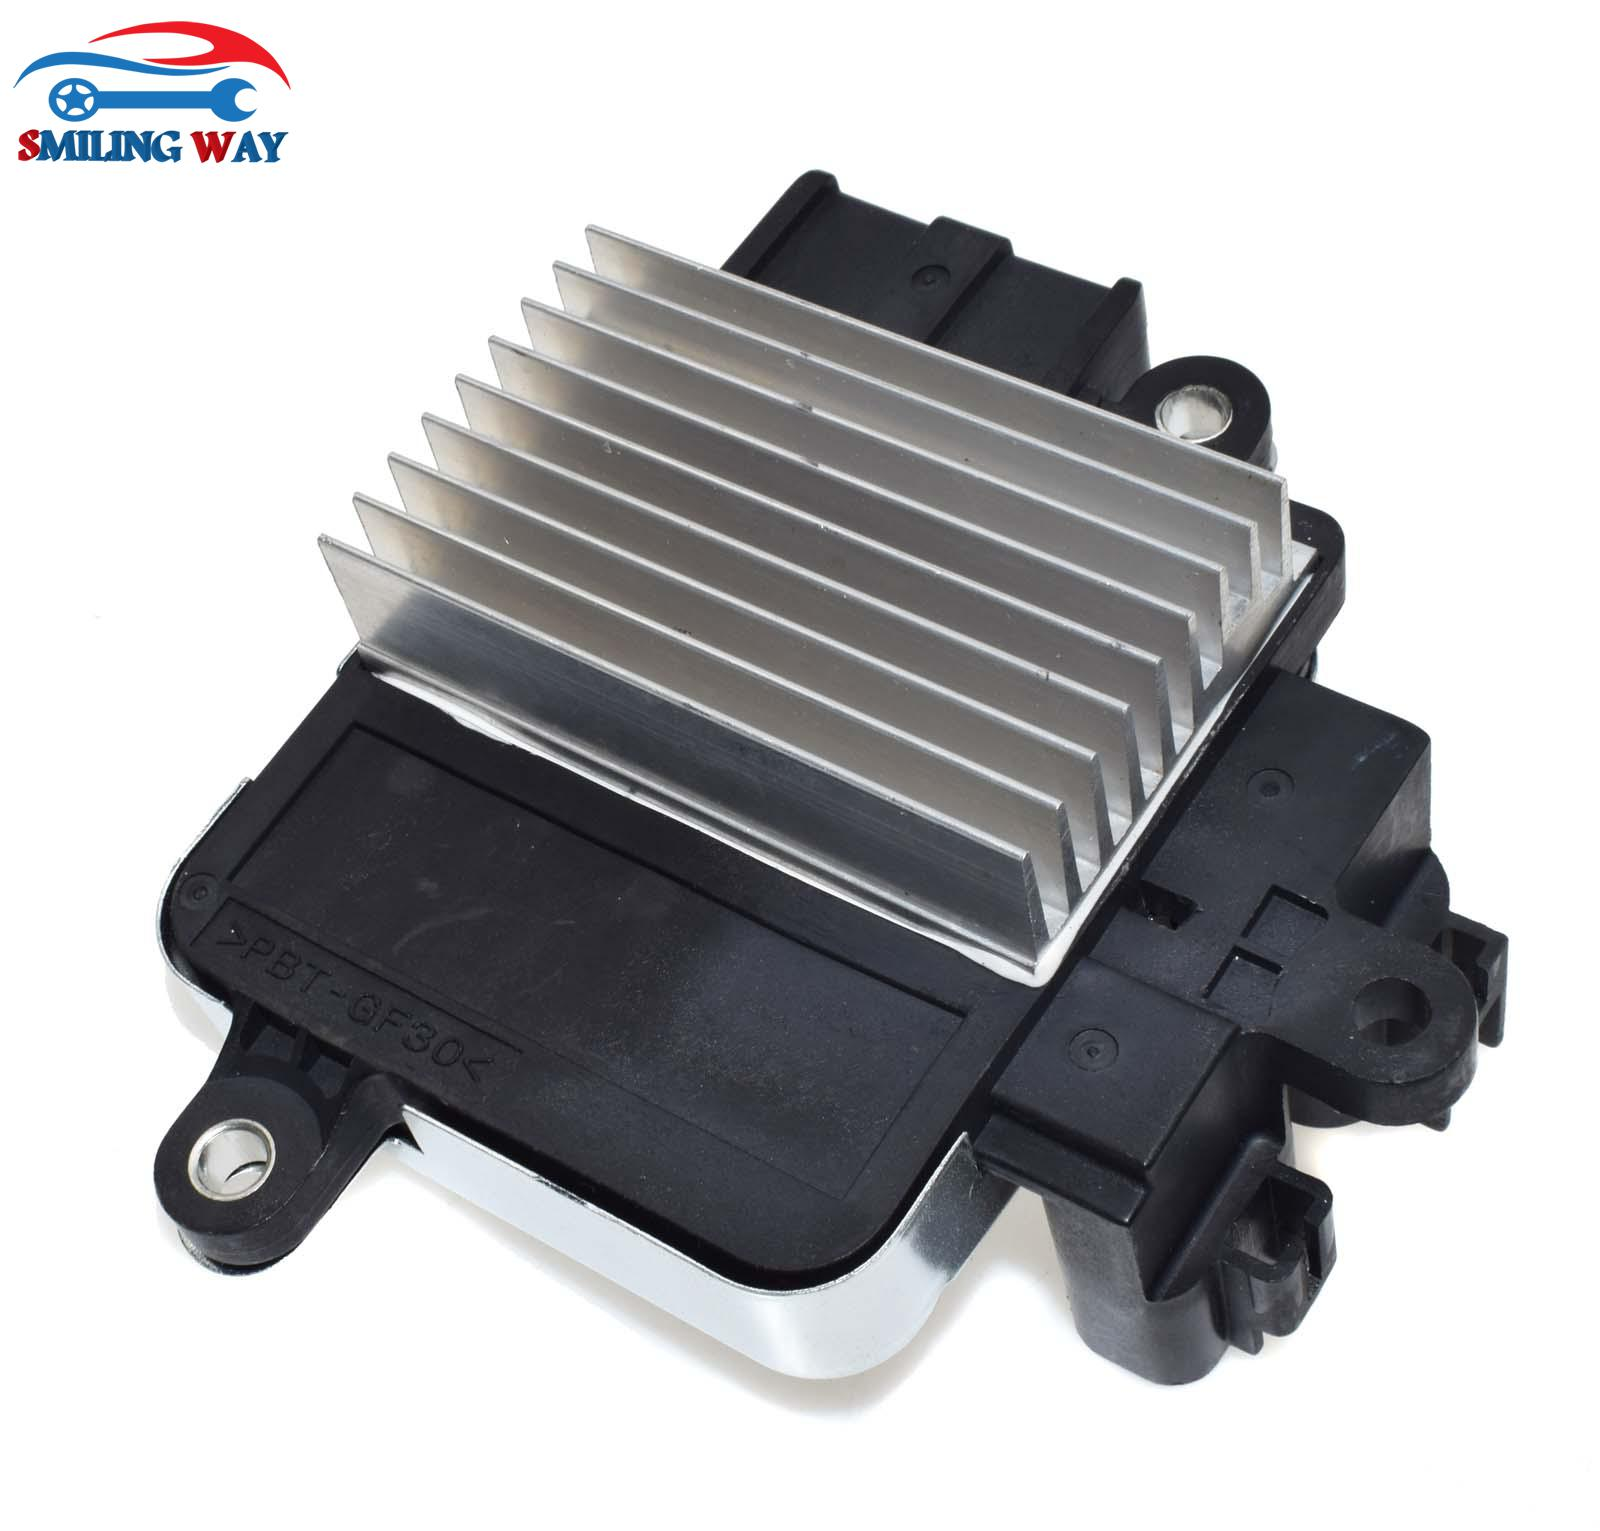 hight resolution of smiling way blower motor resistor for toyota camry highlander venza avalon rav4 sienna lexus es350 gs300 gs350 gs430 gs450h